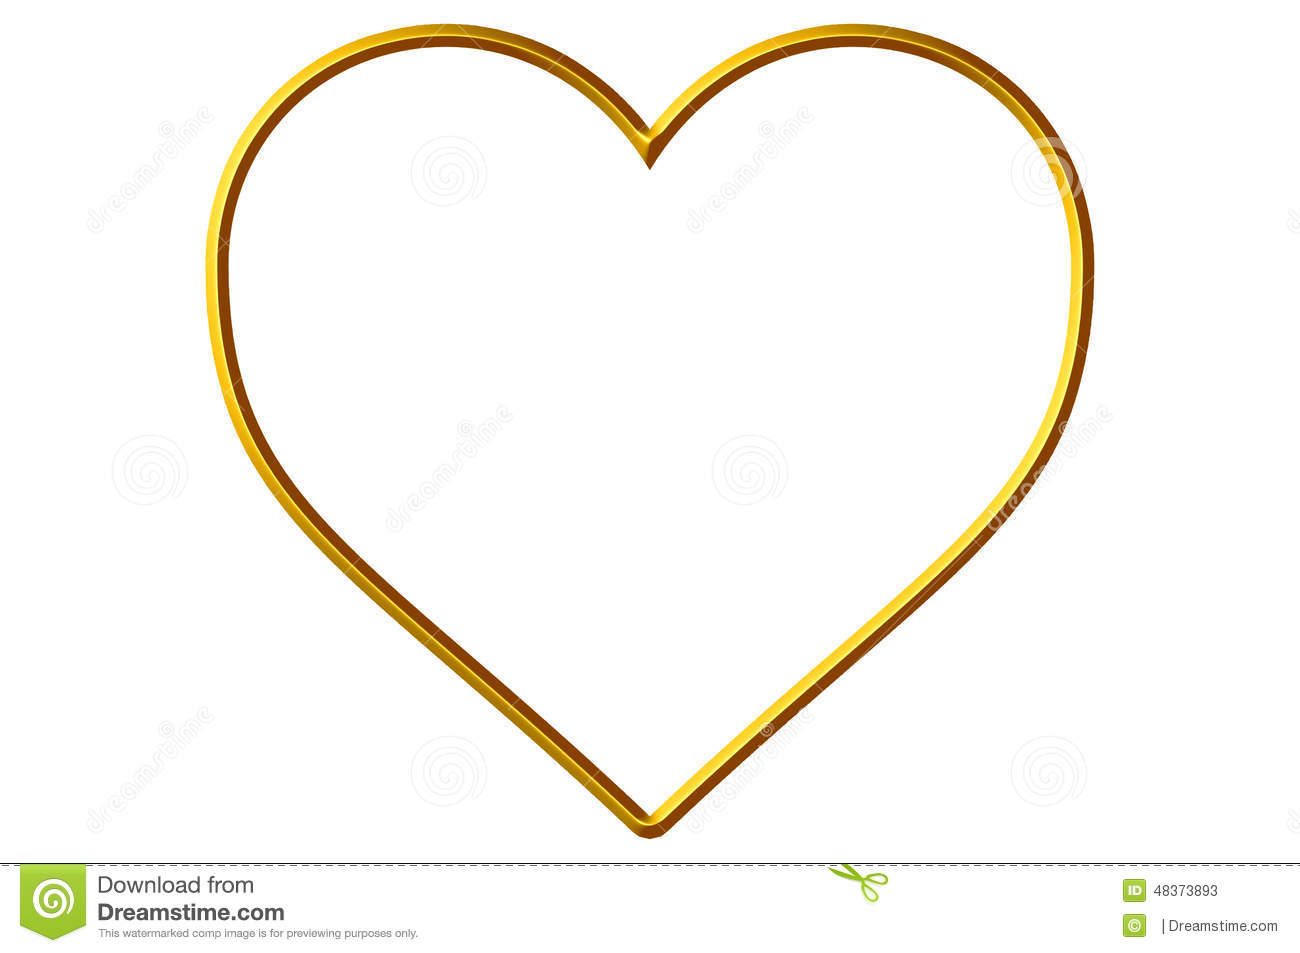 Stock Photos: Golden Heart Frame/Border. Image: 48373893